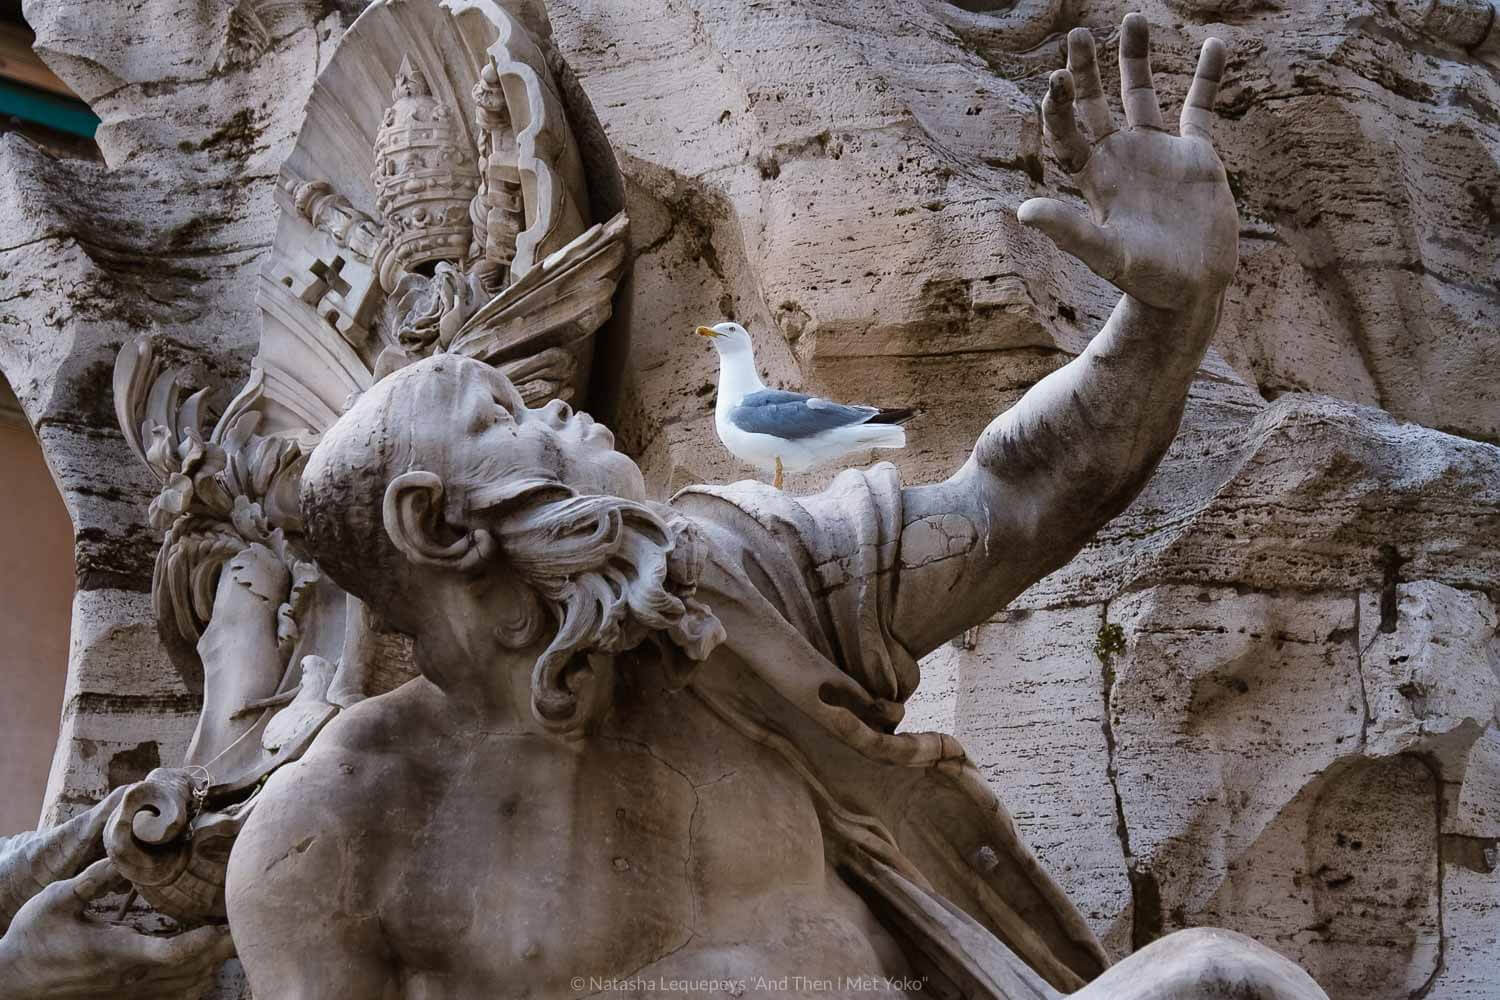 """The Rio de la Plata River God, Piazza Navona, Rome. Travel photography and guide by © Natasha Lequepeys for """"And Then I Met Yoko"""". #rome #italy #travelblog #travelphotography"""